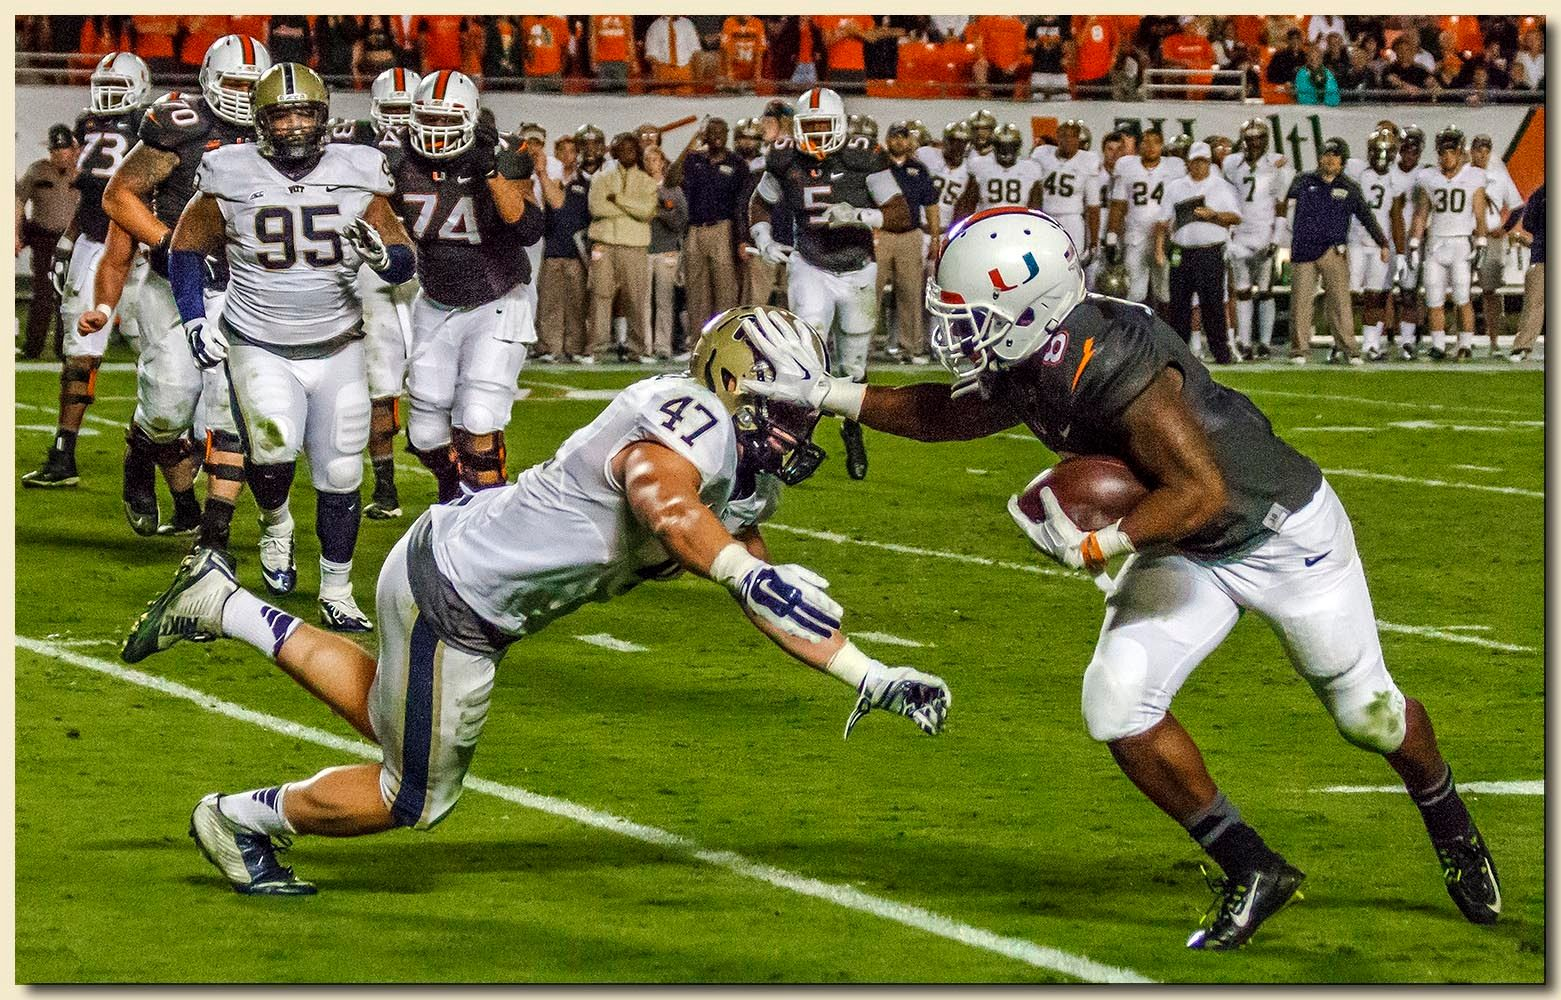 Duke Johnson (8) Ball Carrier Stiff Arm